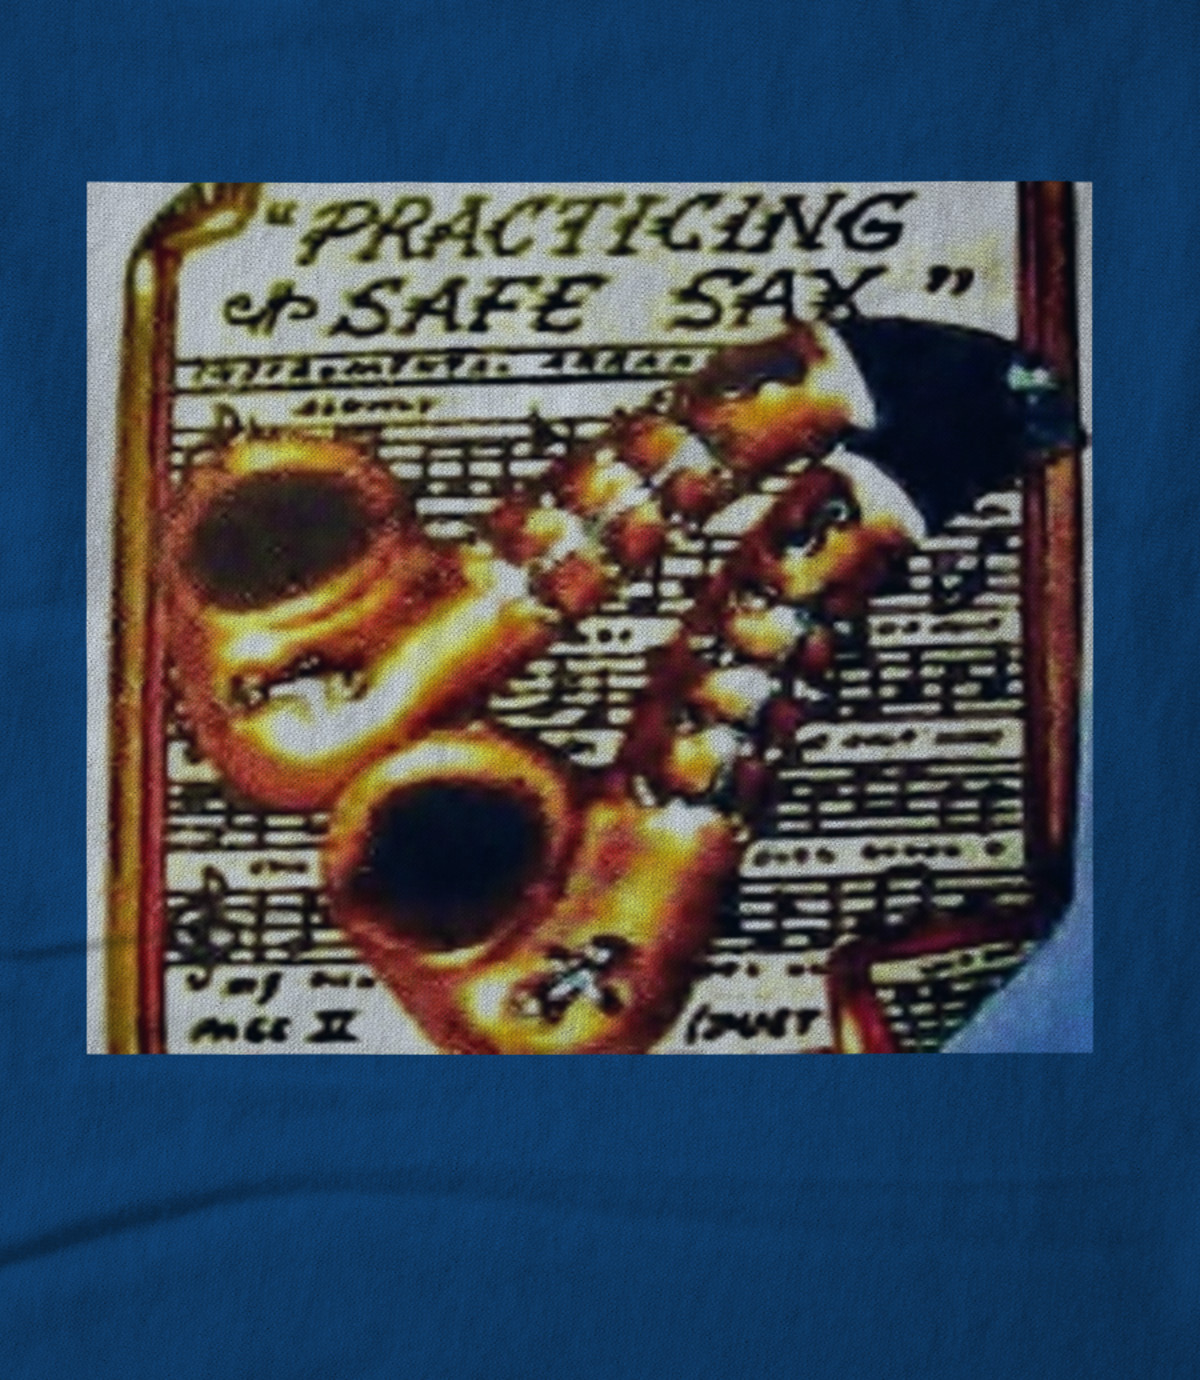 Matthew f  blowers iii practicing safe sax  1505324227